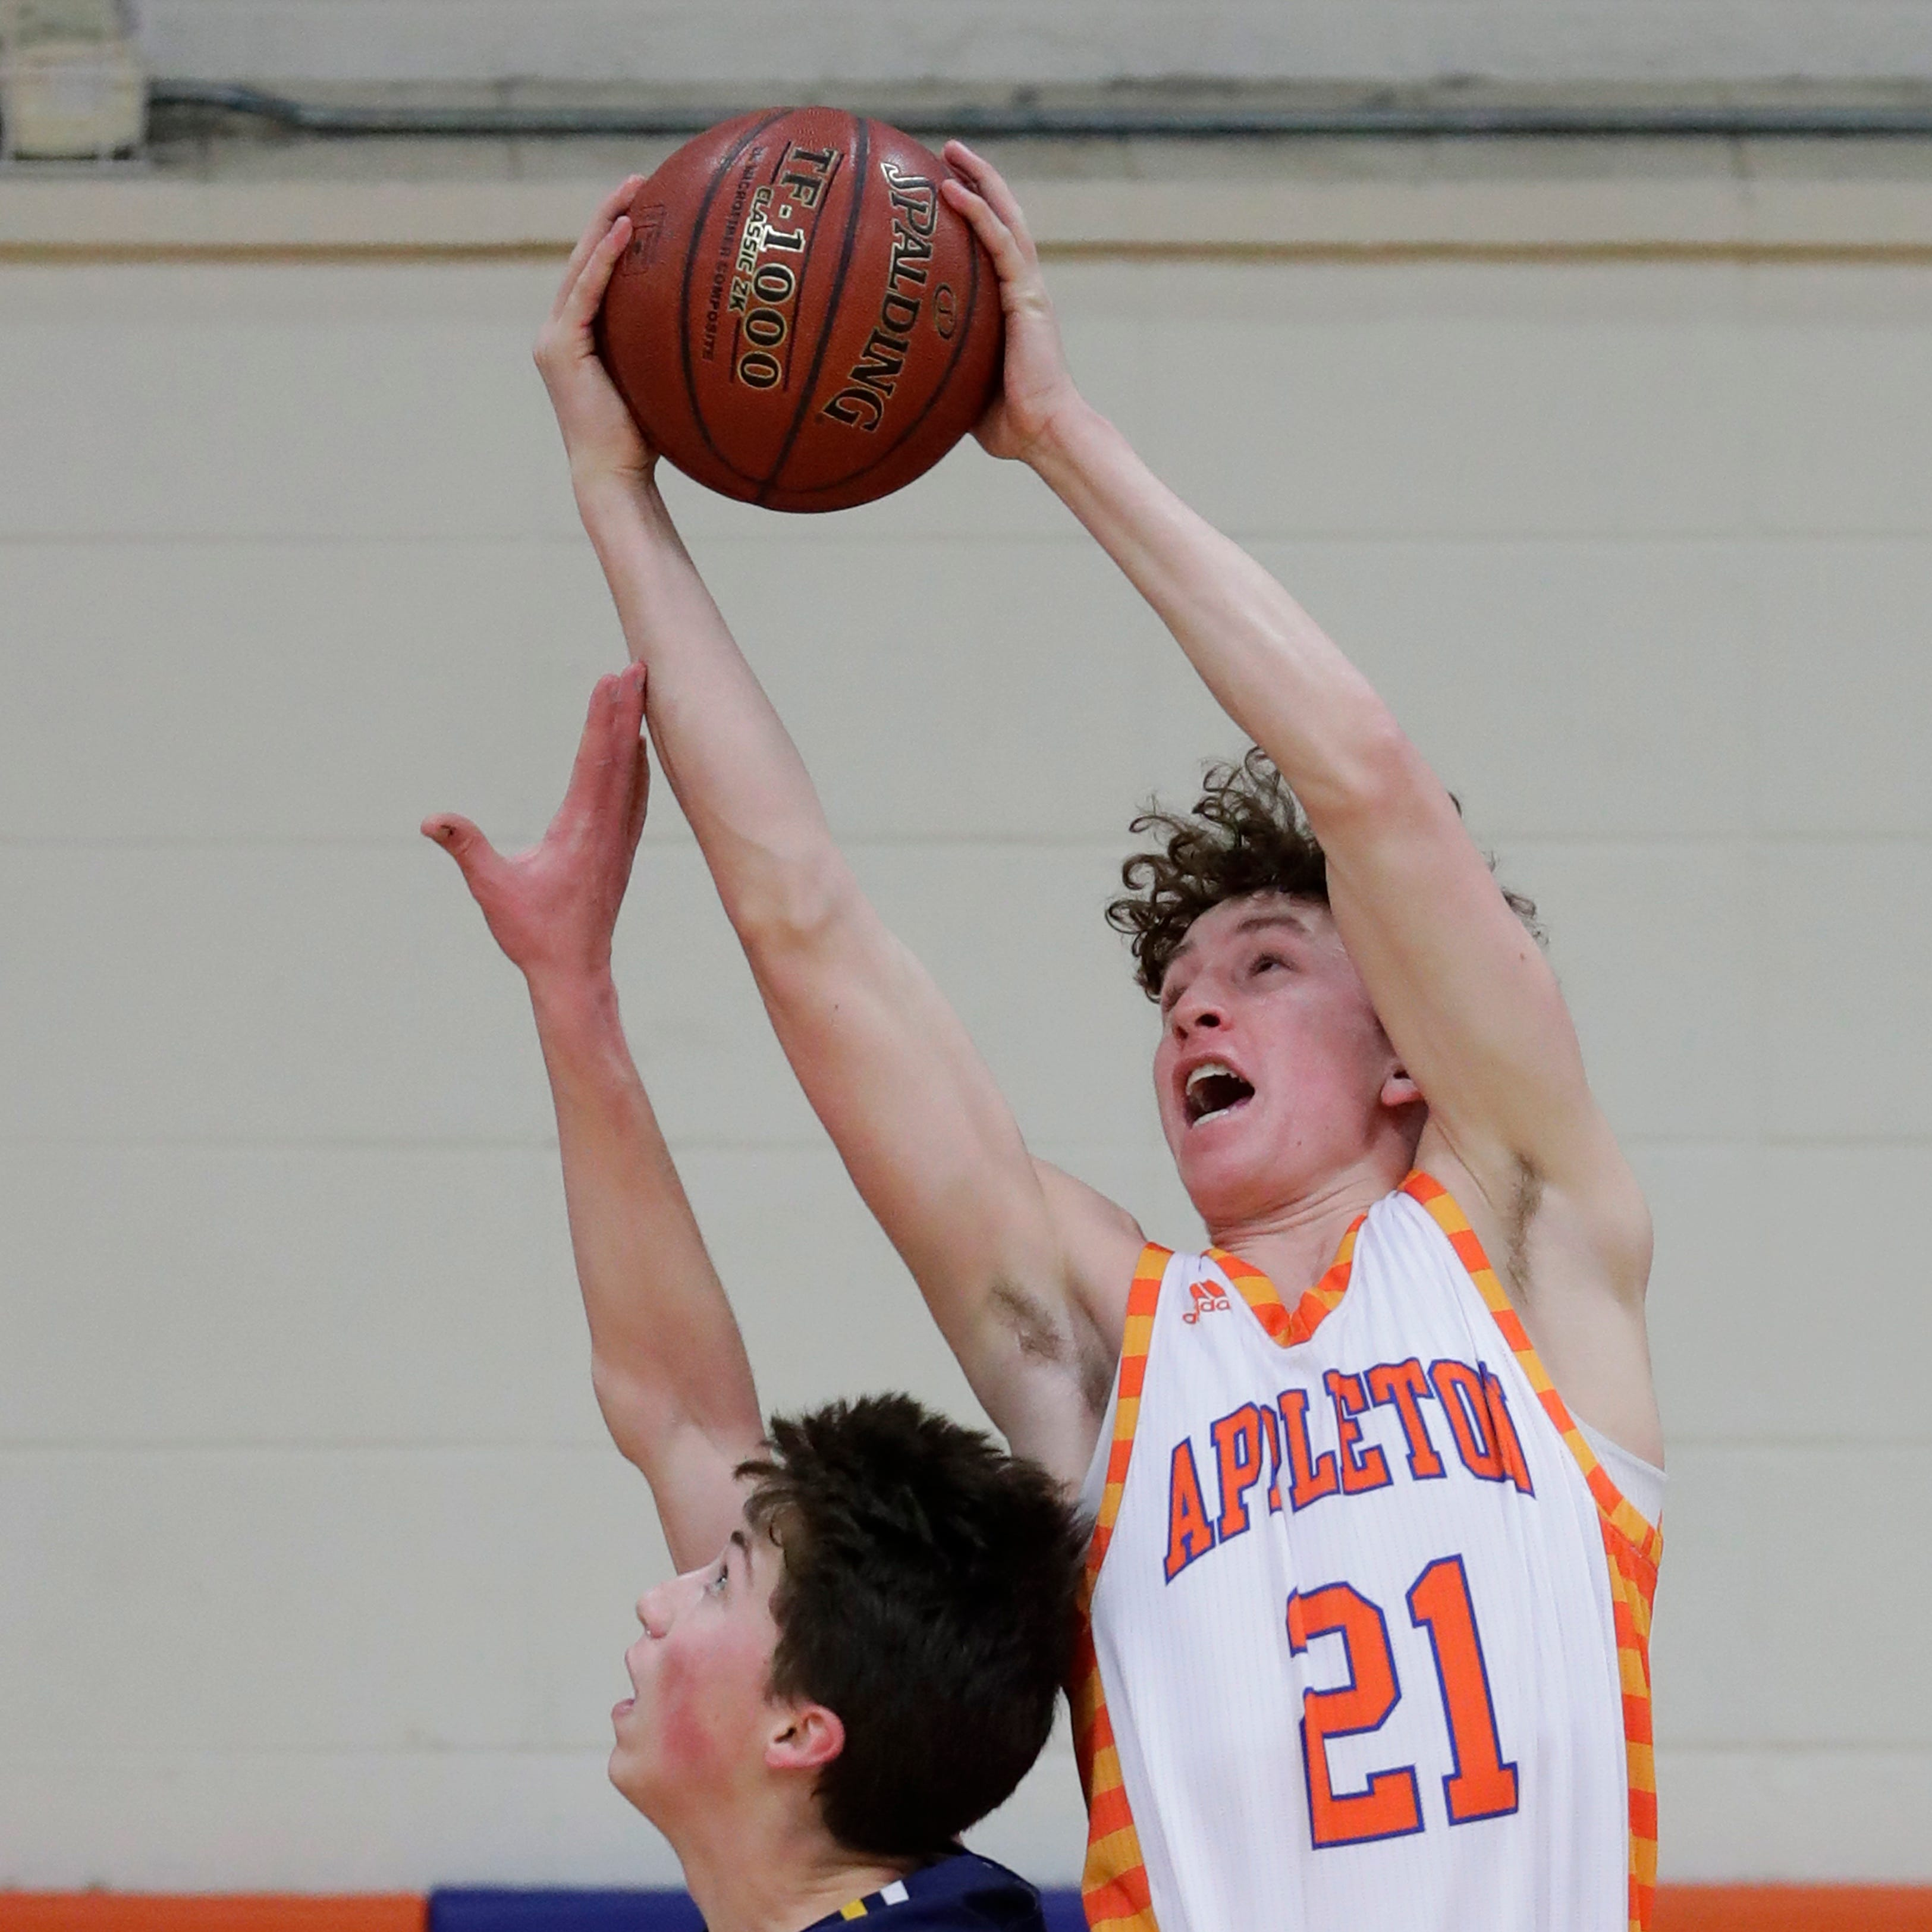 High school: Boys, girls basketball rankings for the Fox Valley area